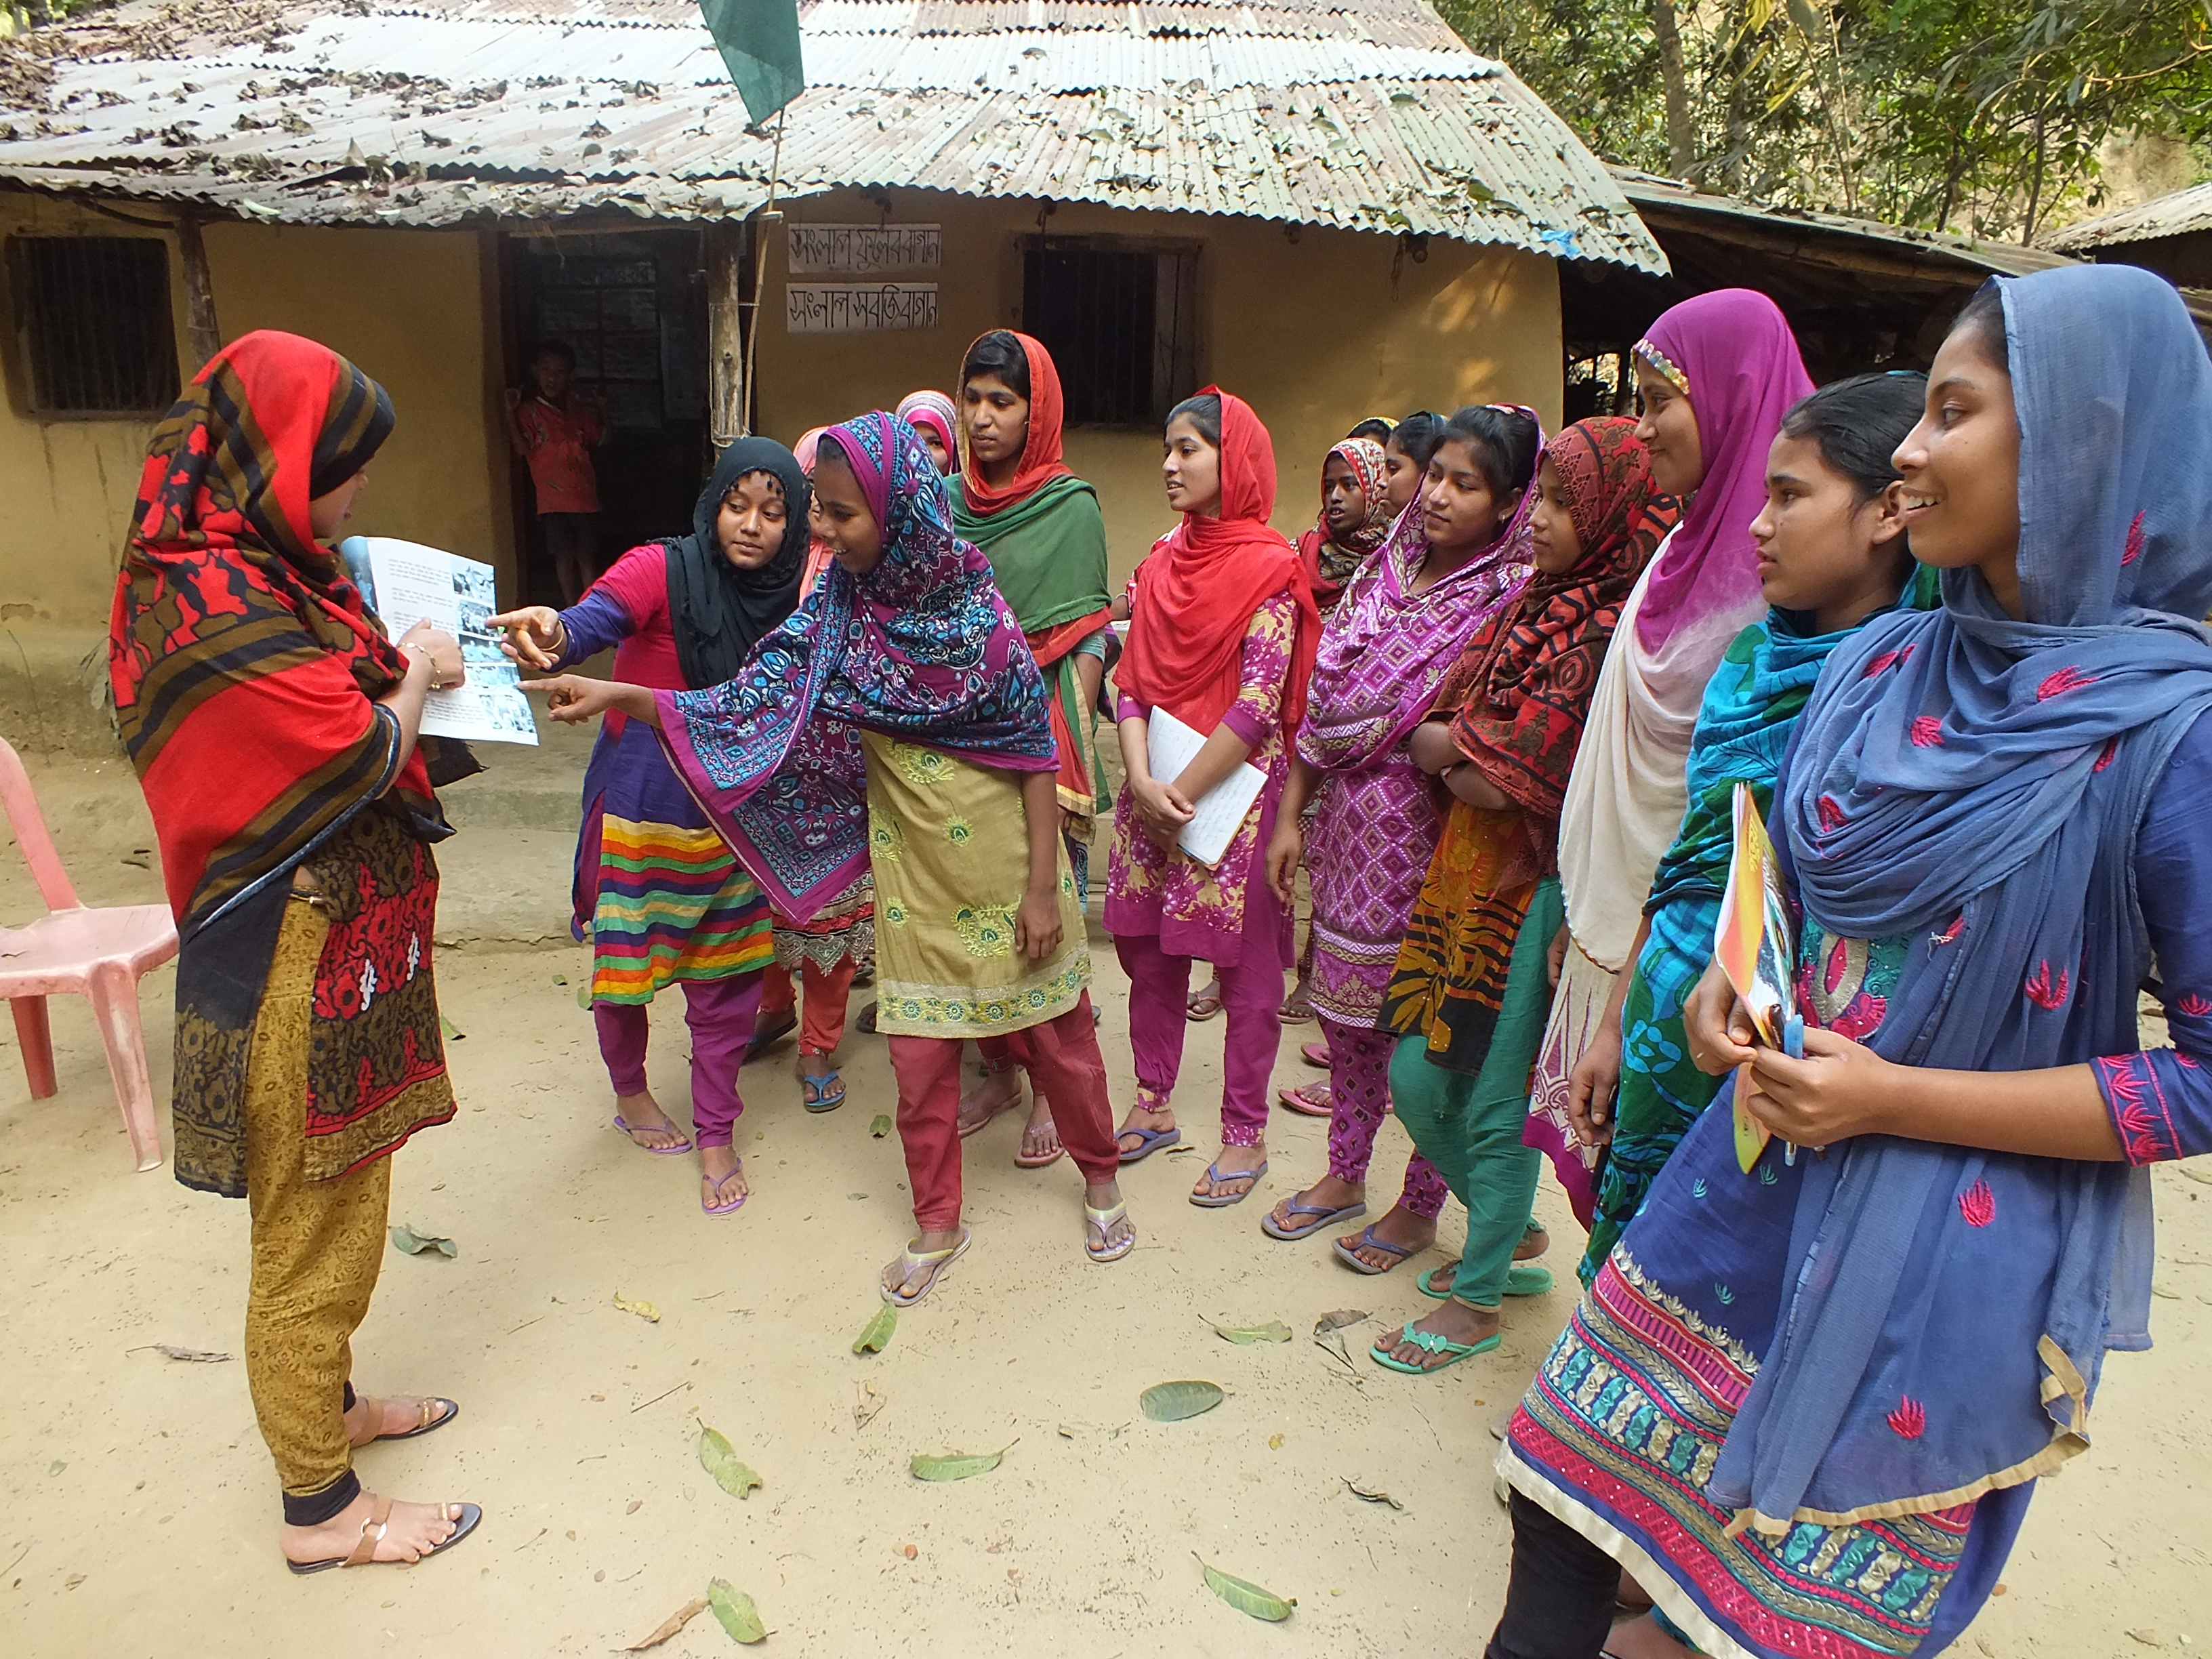 ... A group of girls attend a Shonglap session in Cox's Bazar, Bangladesh.  The peer leader (left) is discussing adolescent legal rights.